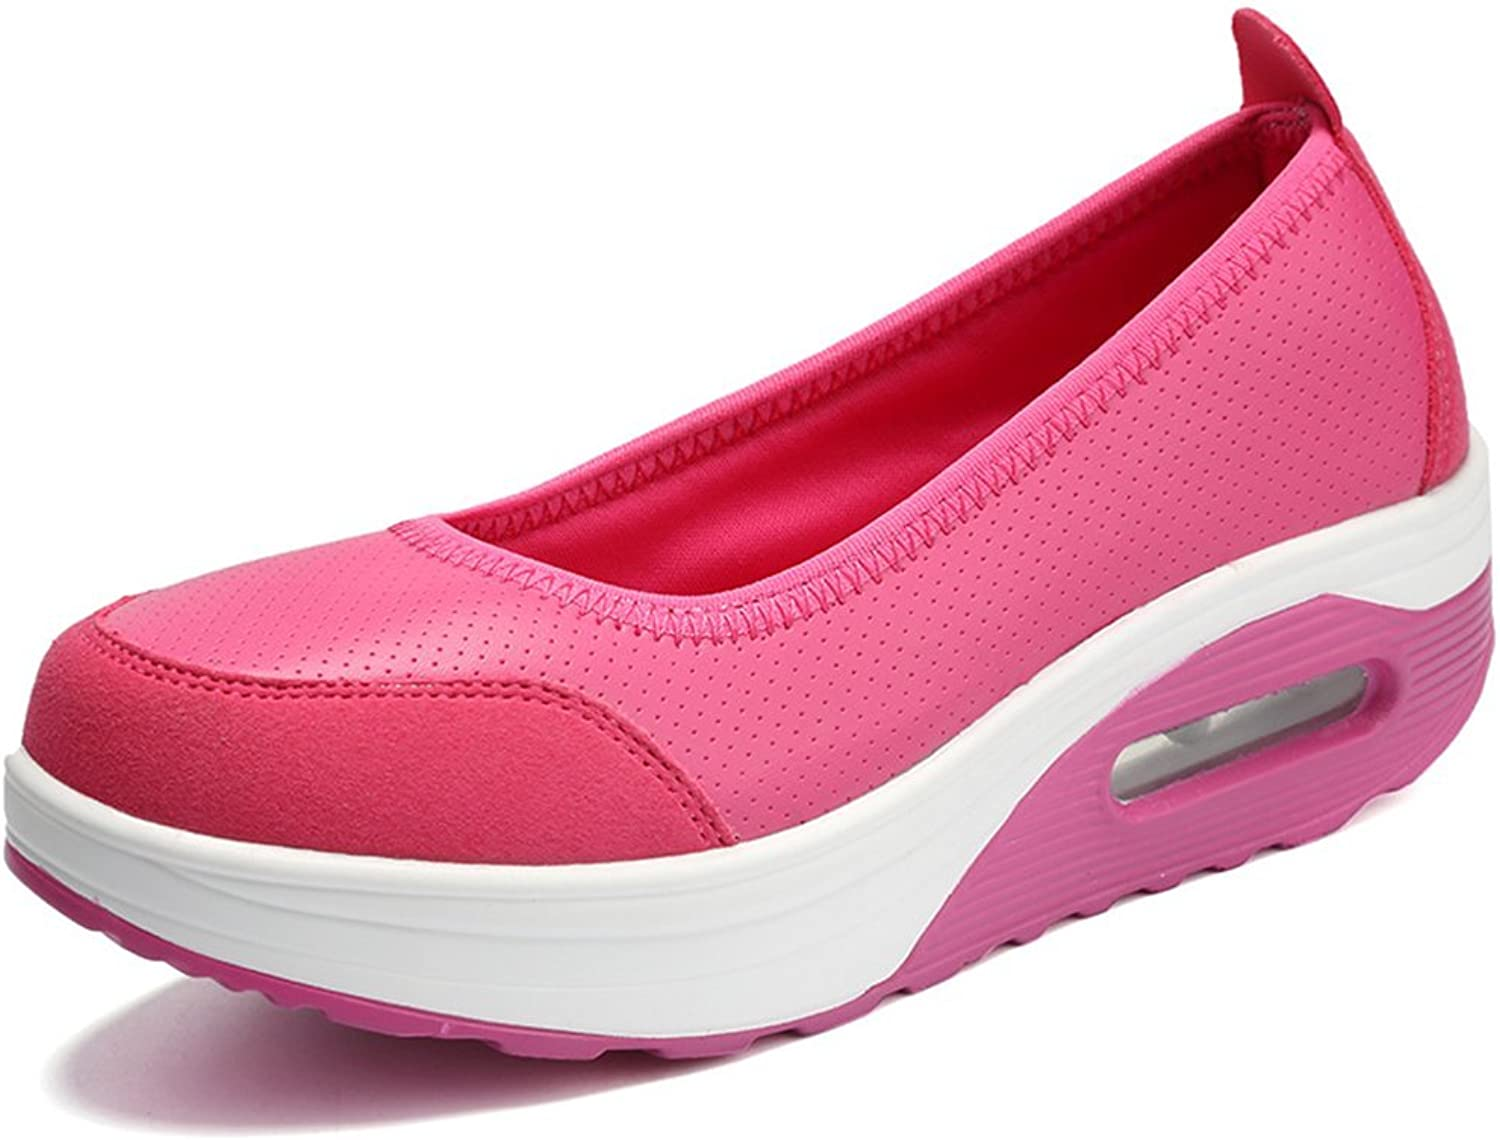 AGoGo Women's Athletic Casual Slip-on Toning Lightweight Sneaker Walking Casual shoes